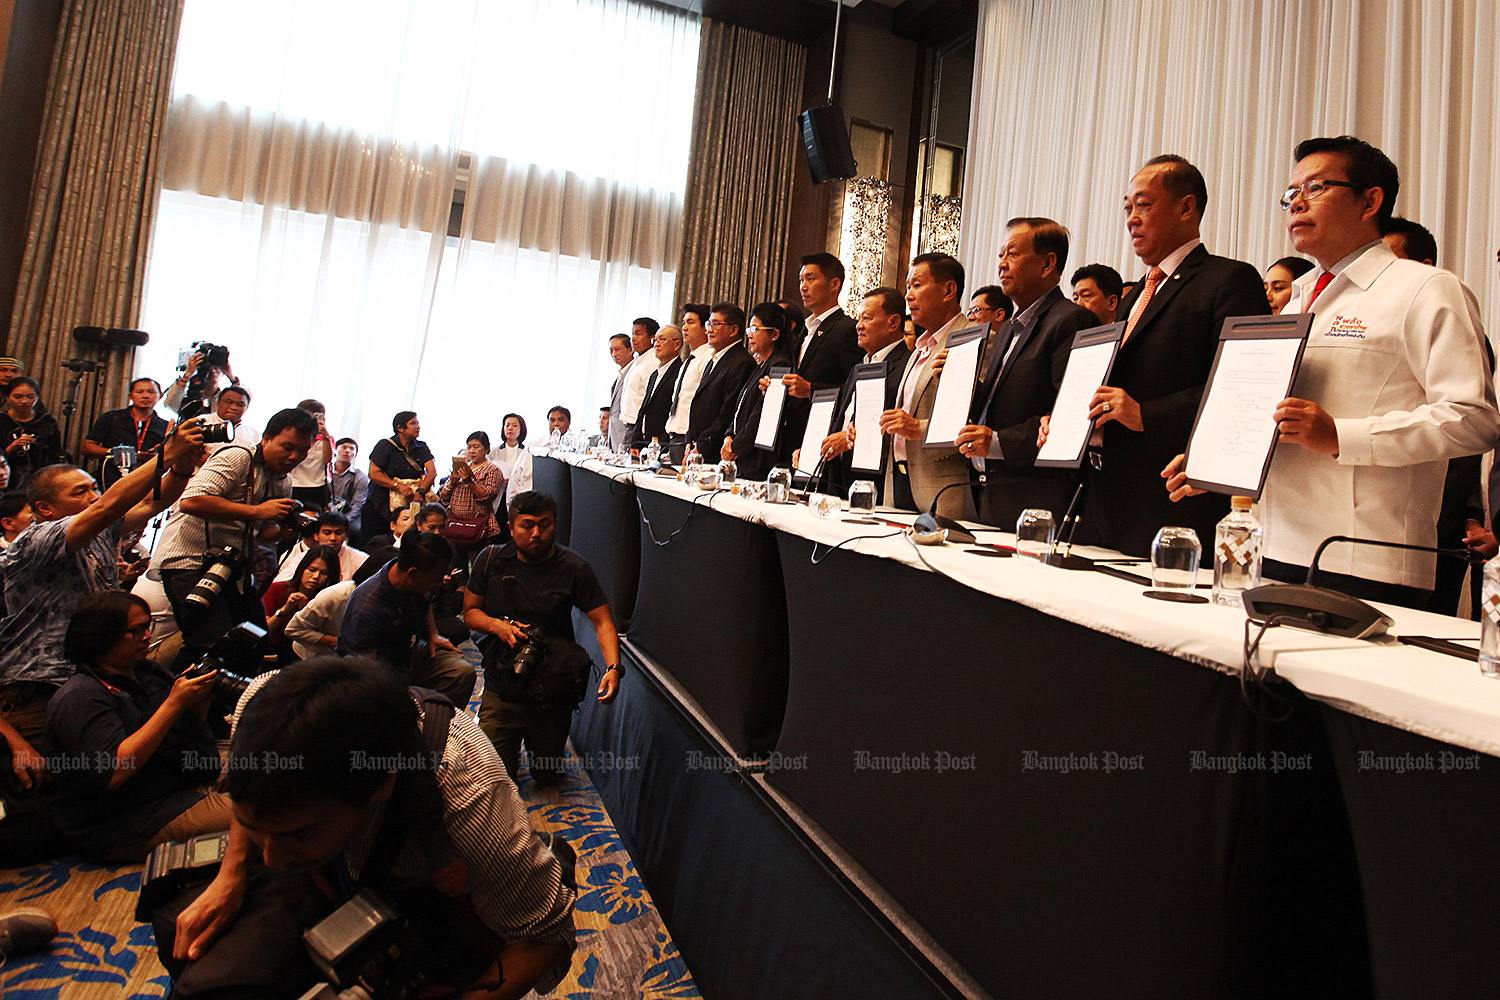 Representatives of the Pheu Thai Party and its allies announce their coalition plan in Bangkok on March 27. (Photo by Prakrit Janthawong)